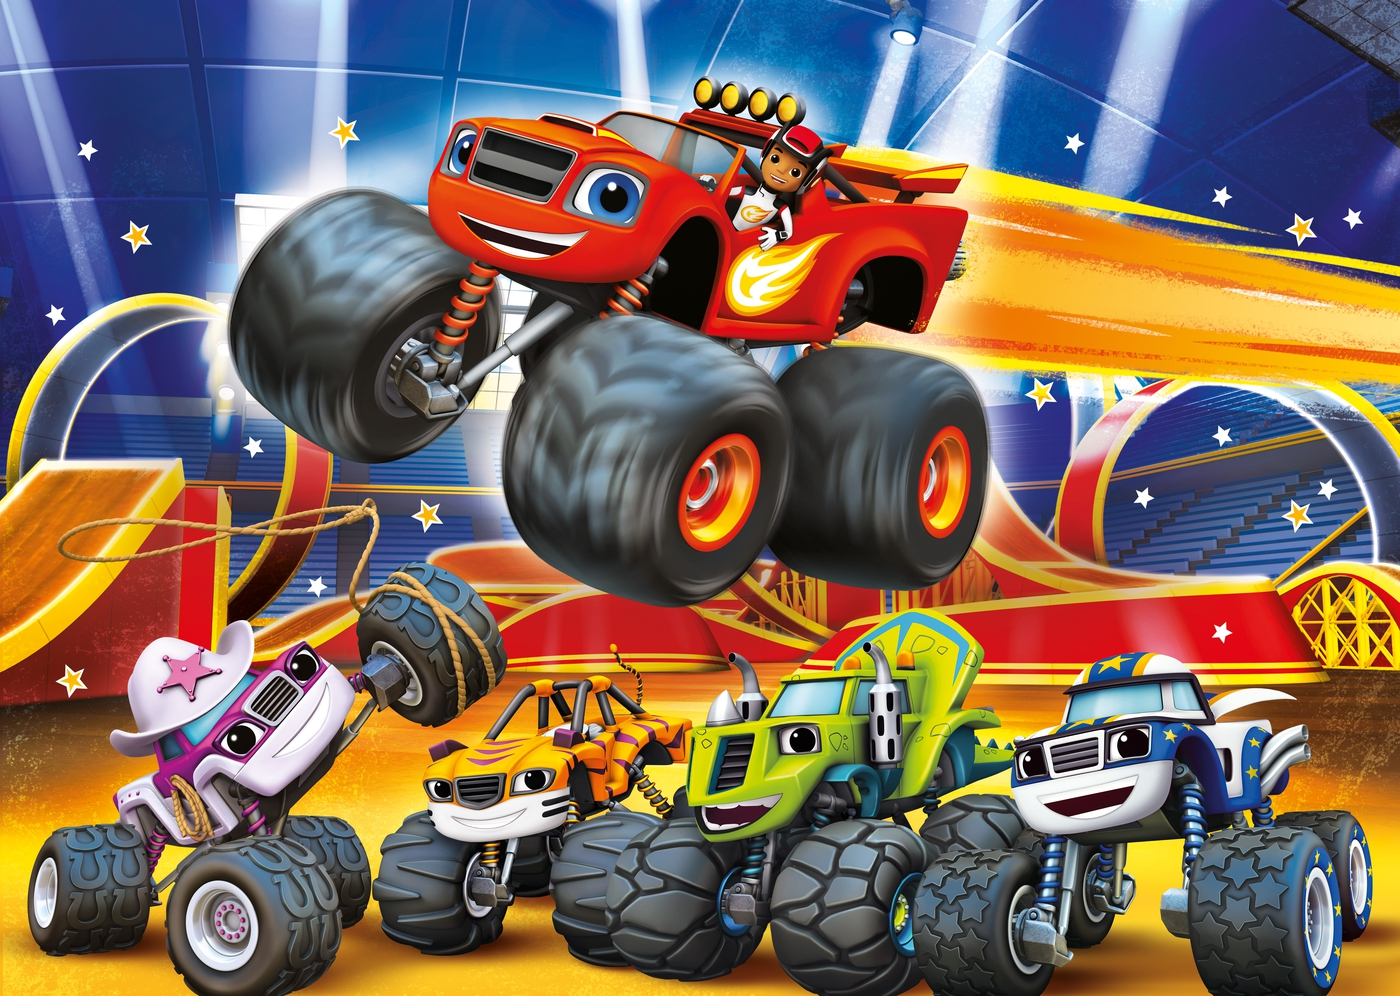 It's just a picture of Soft Blaze and the Monster Machines Images